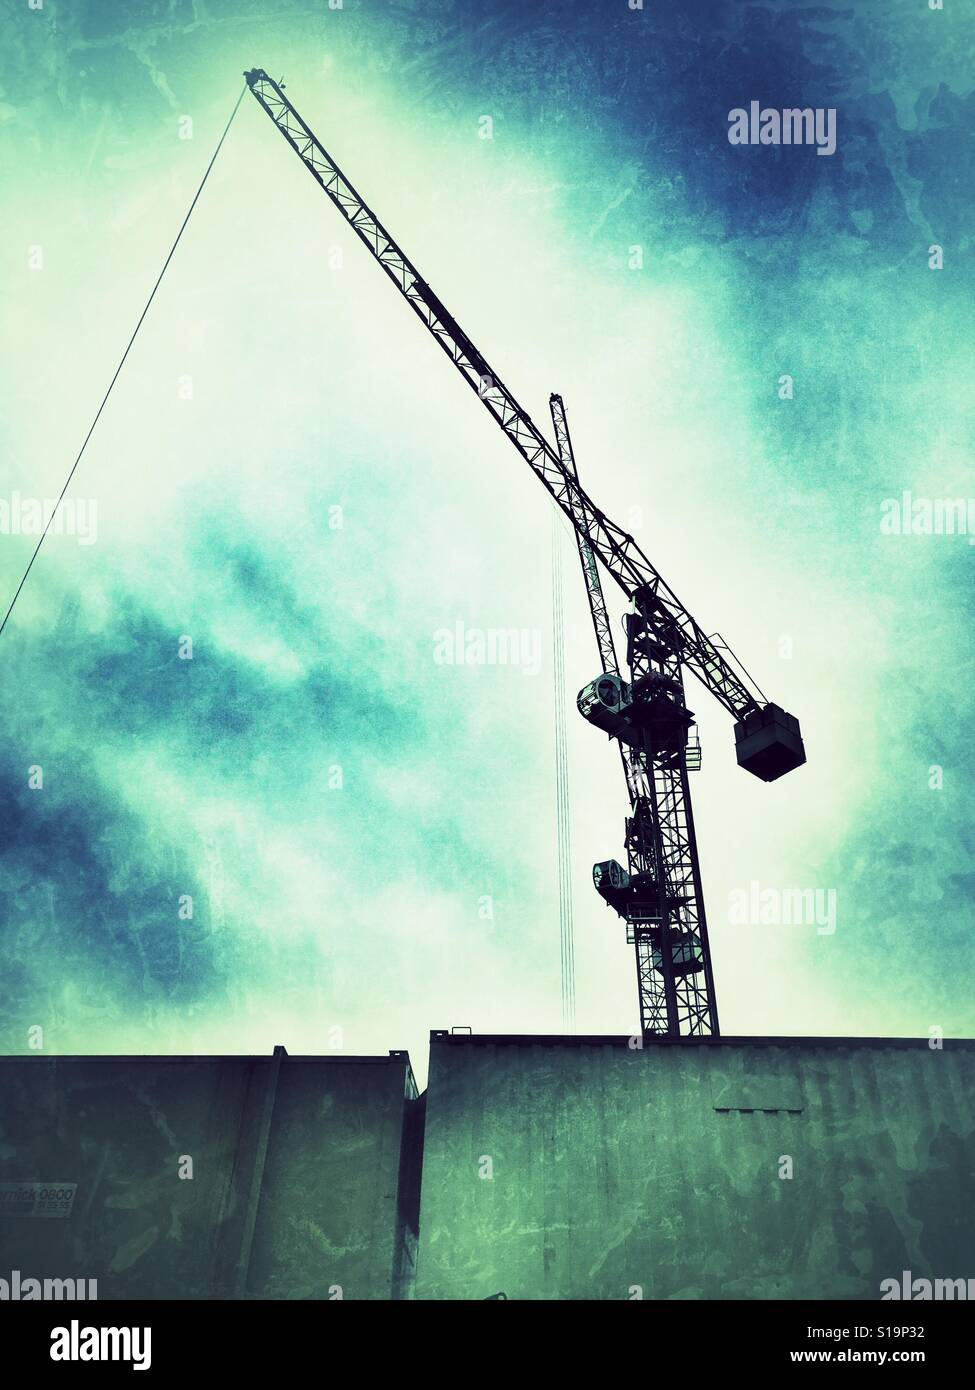 A construction crane in London - Stock Image